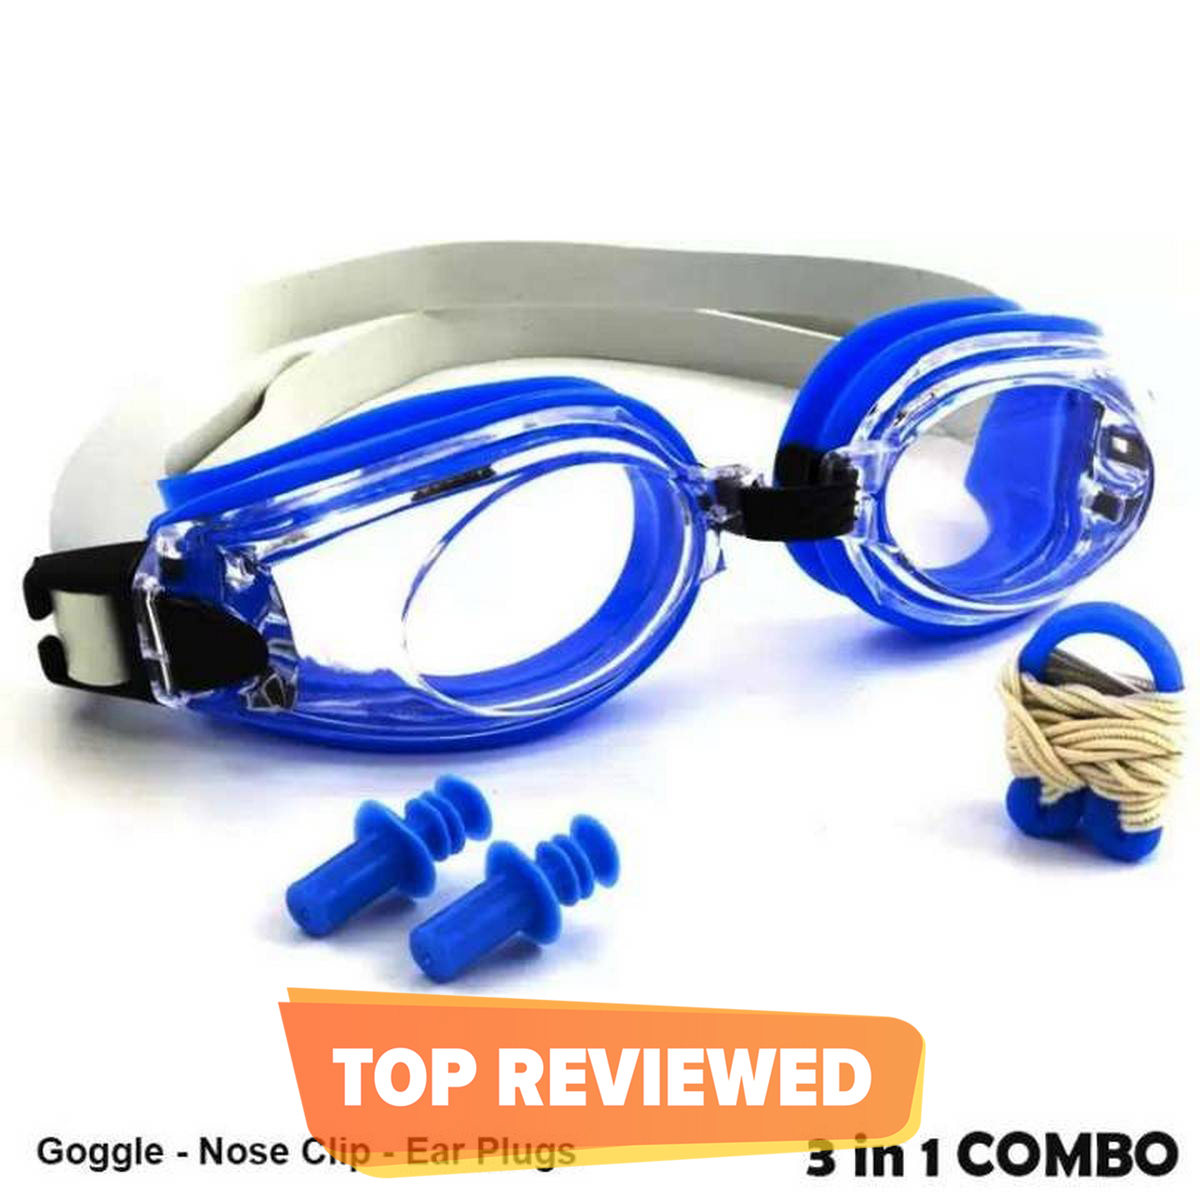 New 3 in 1  Men Women Waterproof Anti-fog Swimming Goggles Set Wide Protection UV Sight Adjustable Lenses with Nose Clip Ear Plug